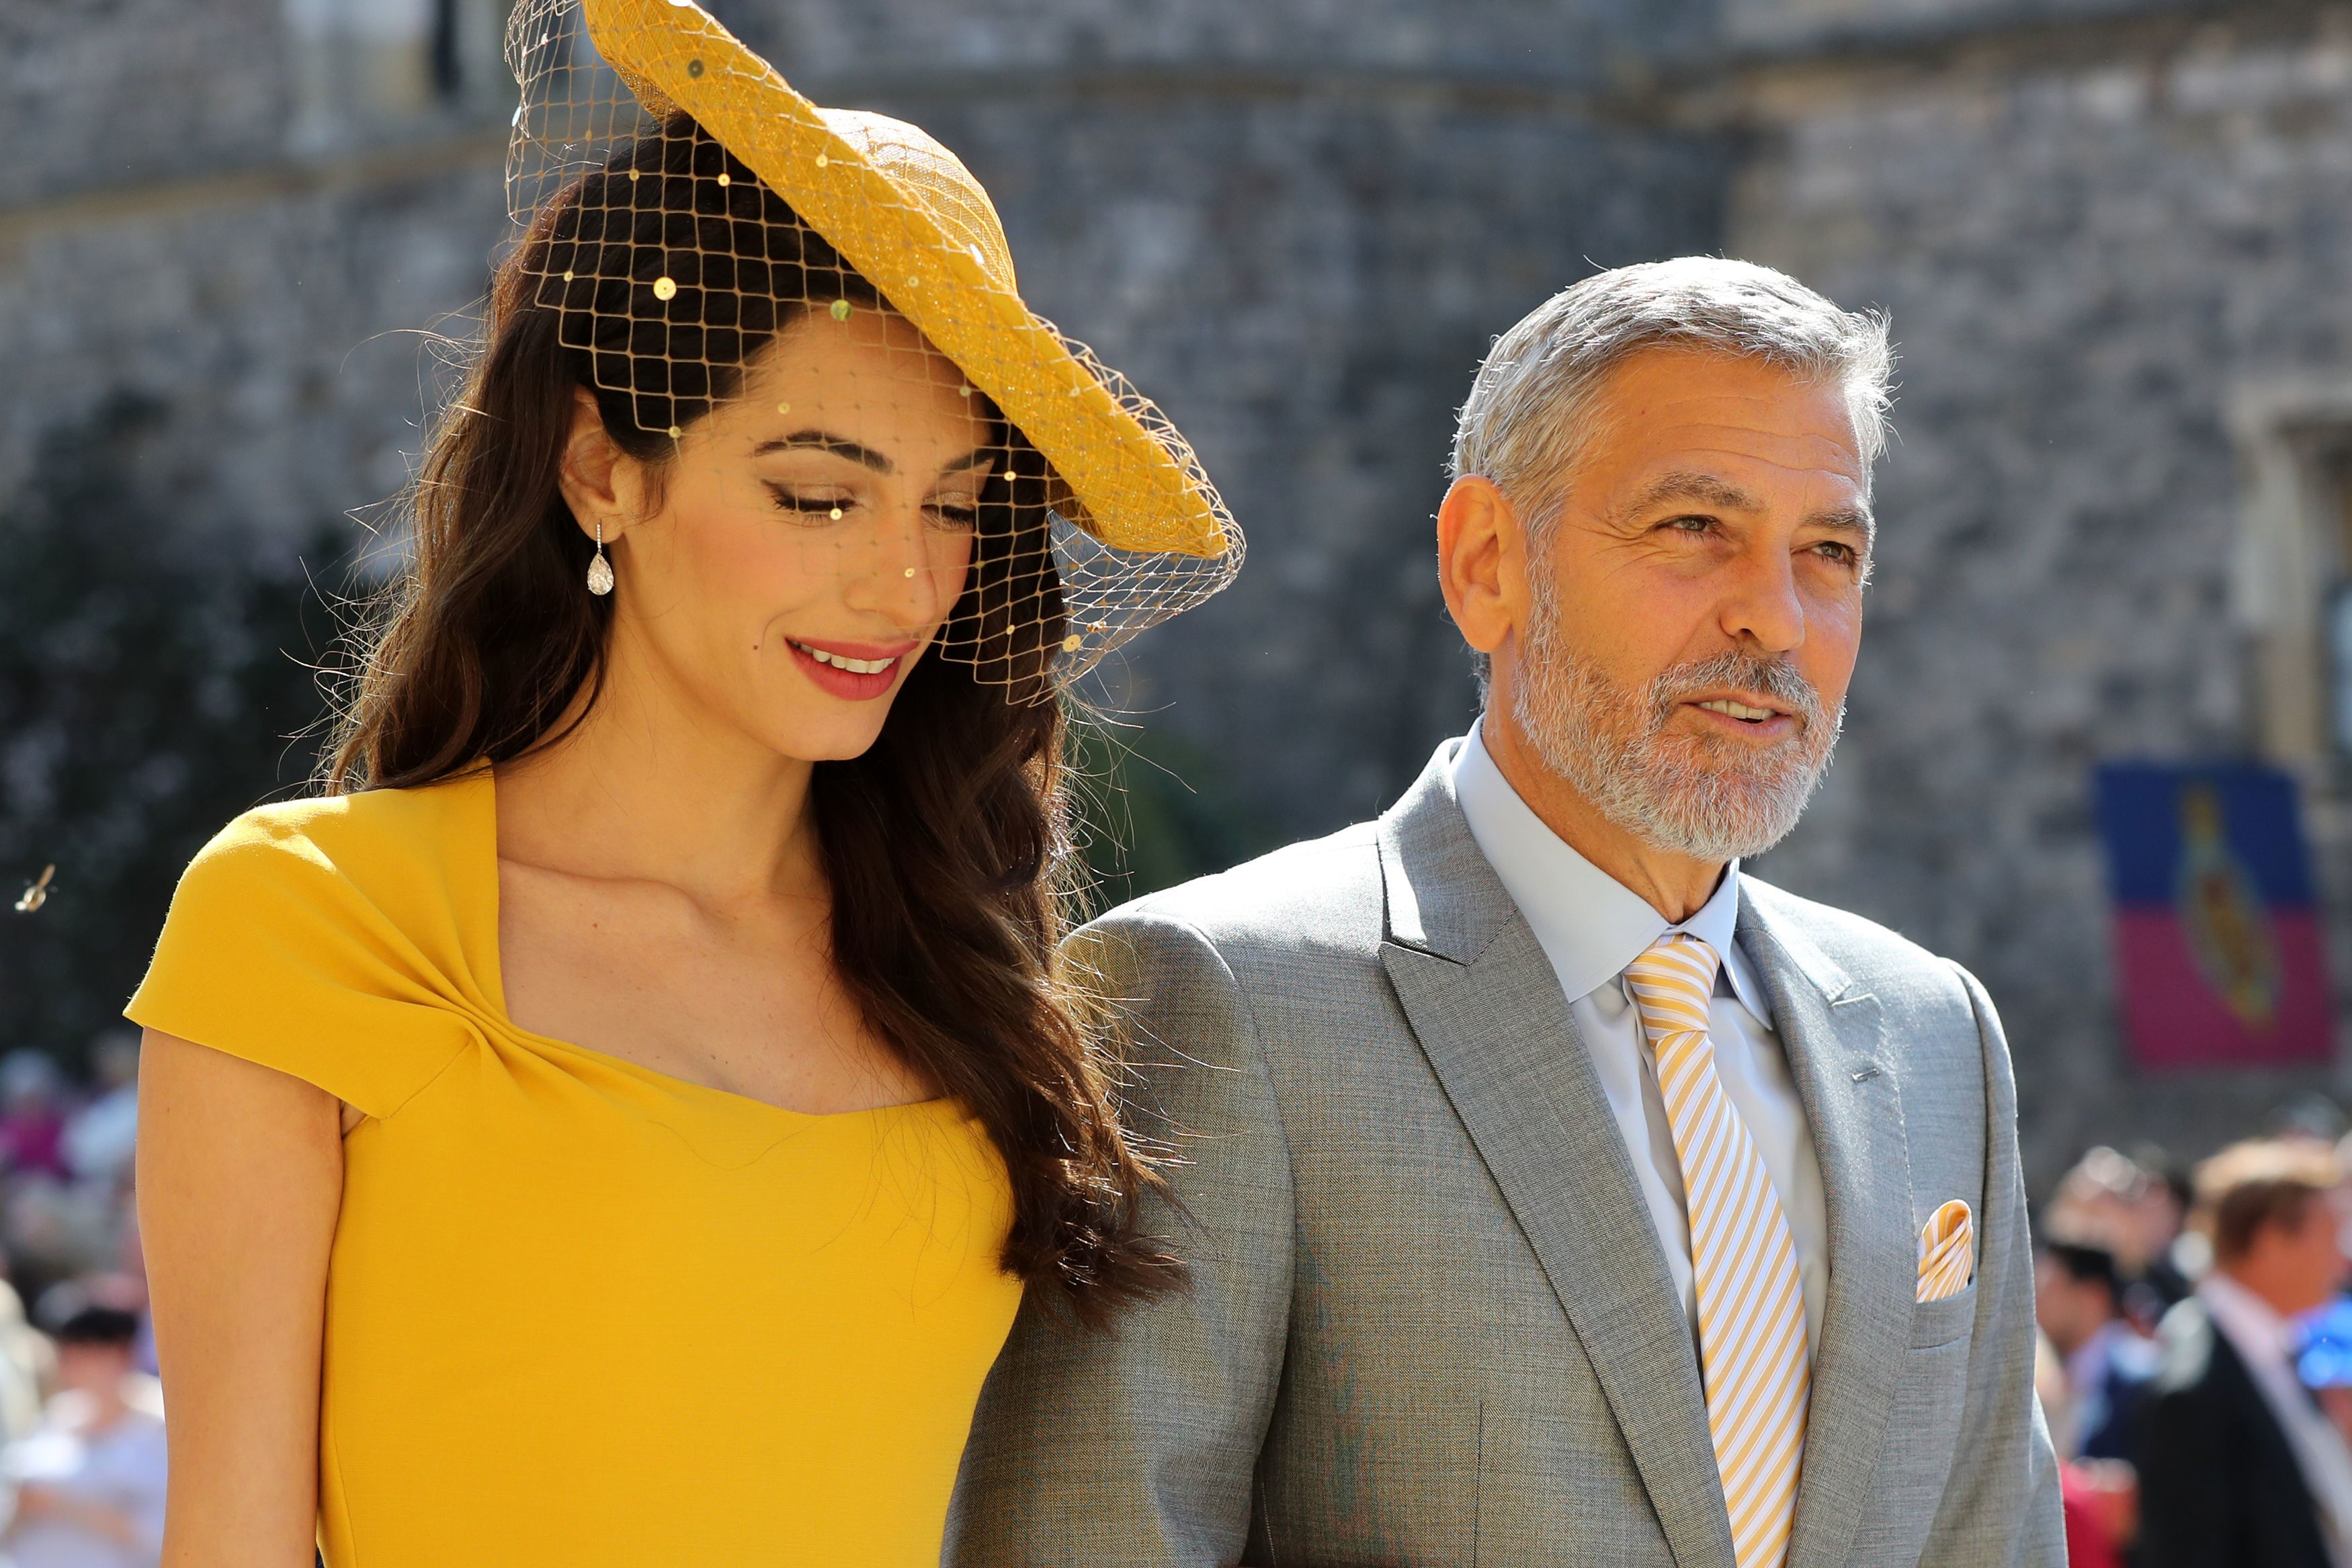 Amal and George Clooney arrive at St George's Chapel at Windsor Castle for the wedding of Prince Harry to Meghan Markle on May 19, 2018 | Source: Getty Images